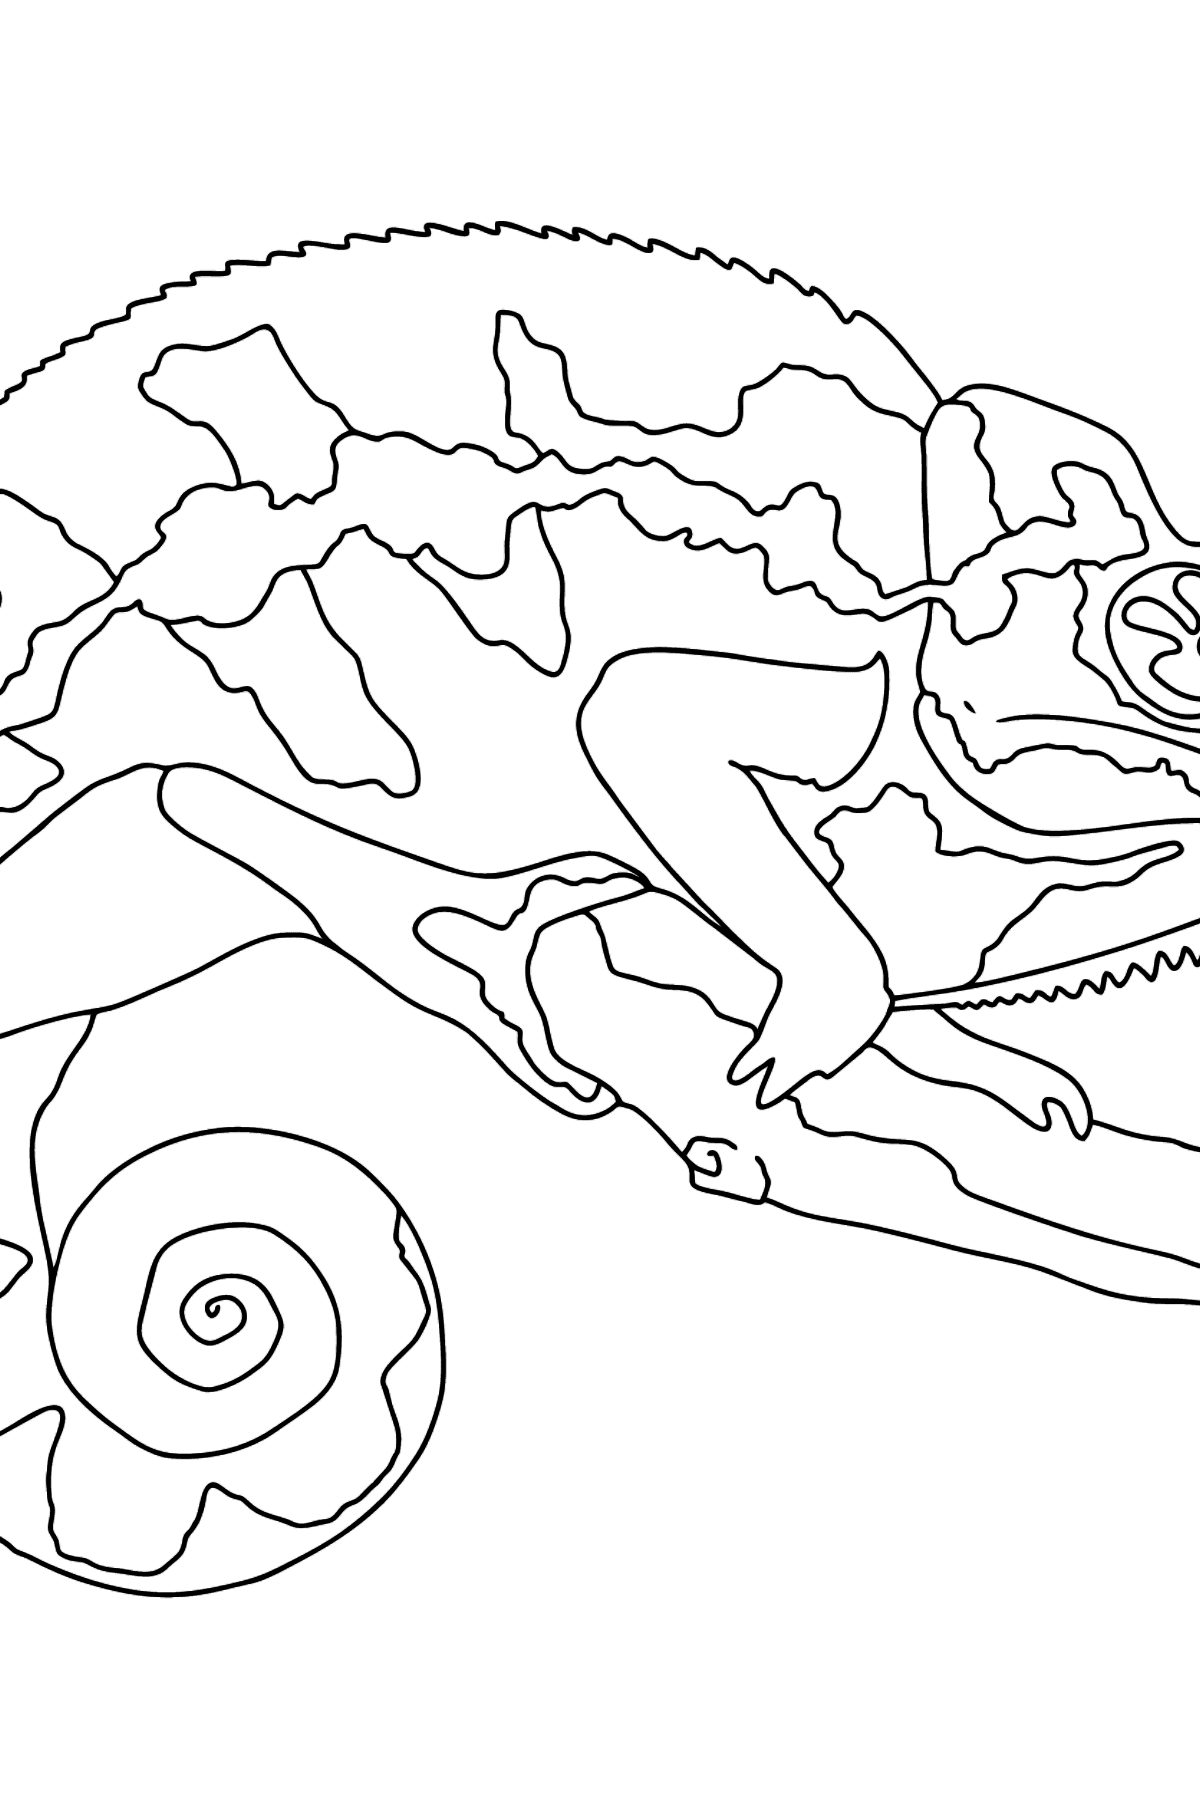 Coloring Page - A Multicolored Chameleon - Coloring Pages for Kids